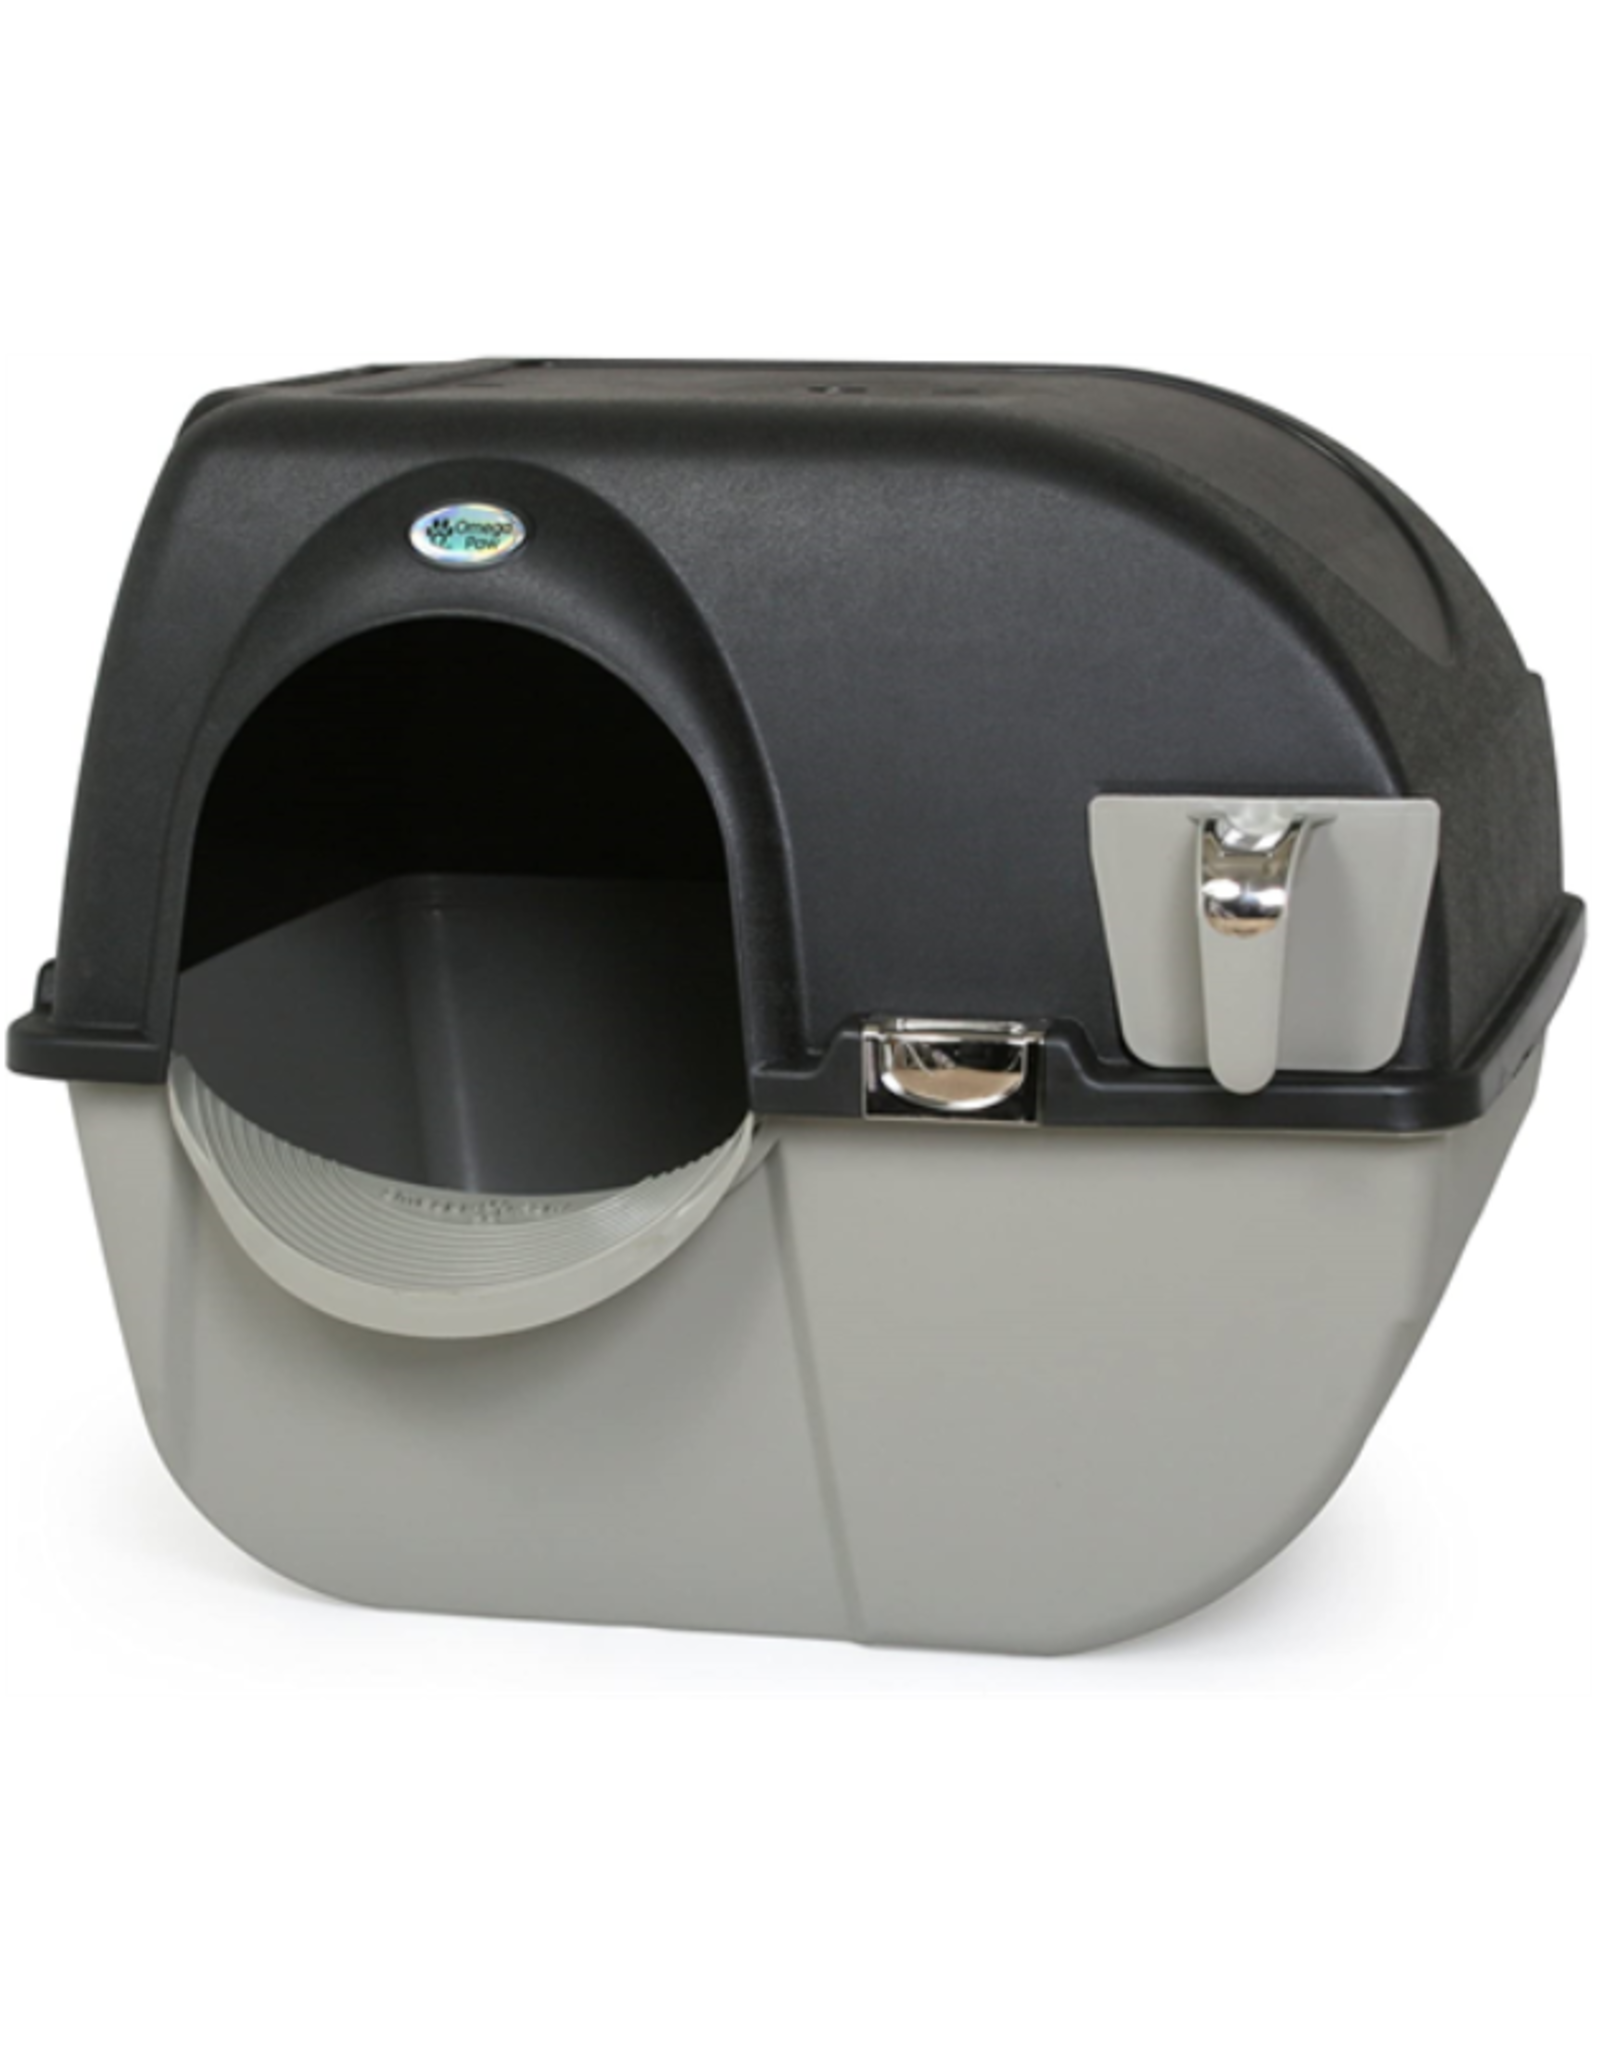 Omega Paw Omega Paw Self-Cleaning Litter Box Large